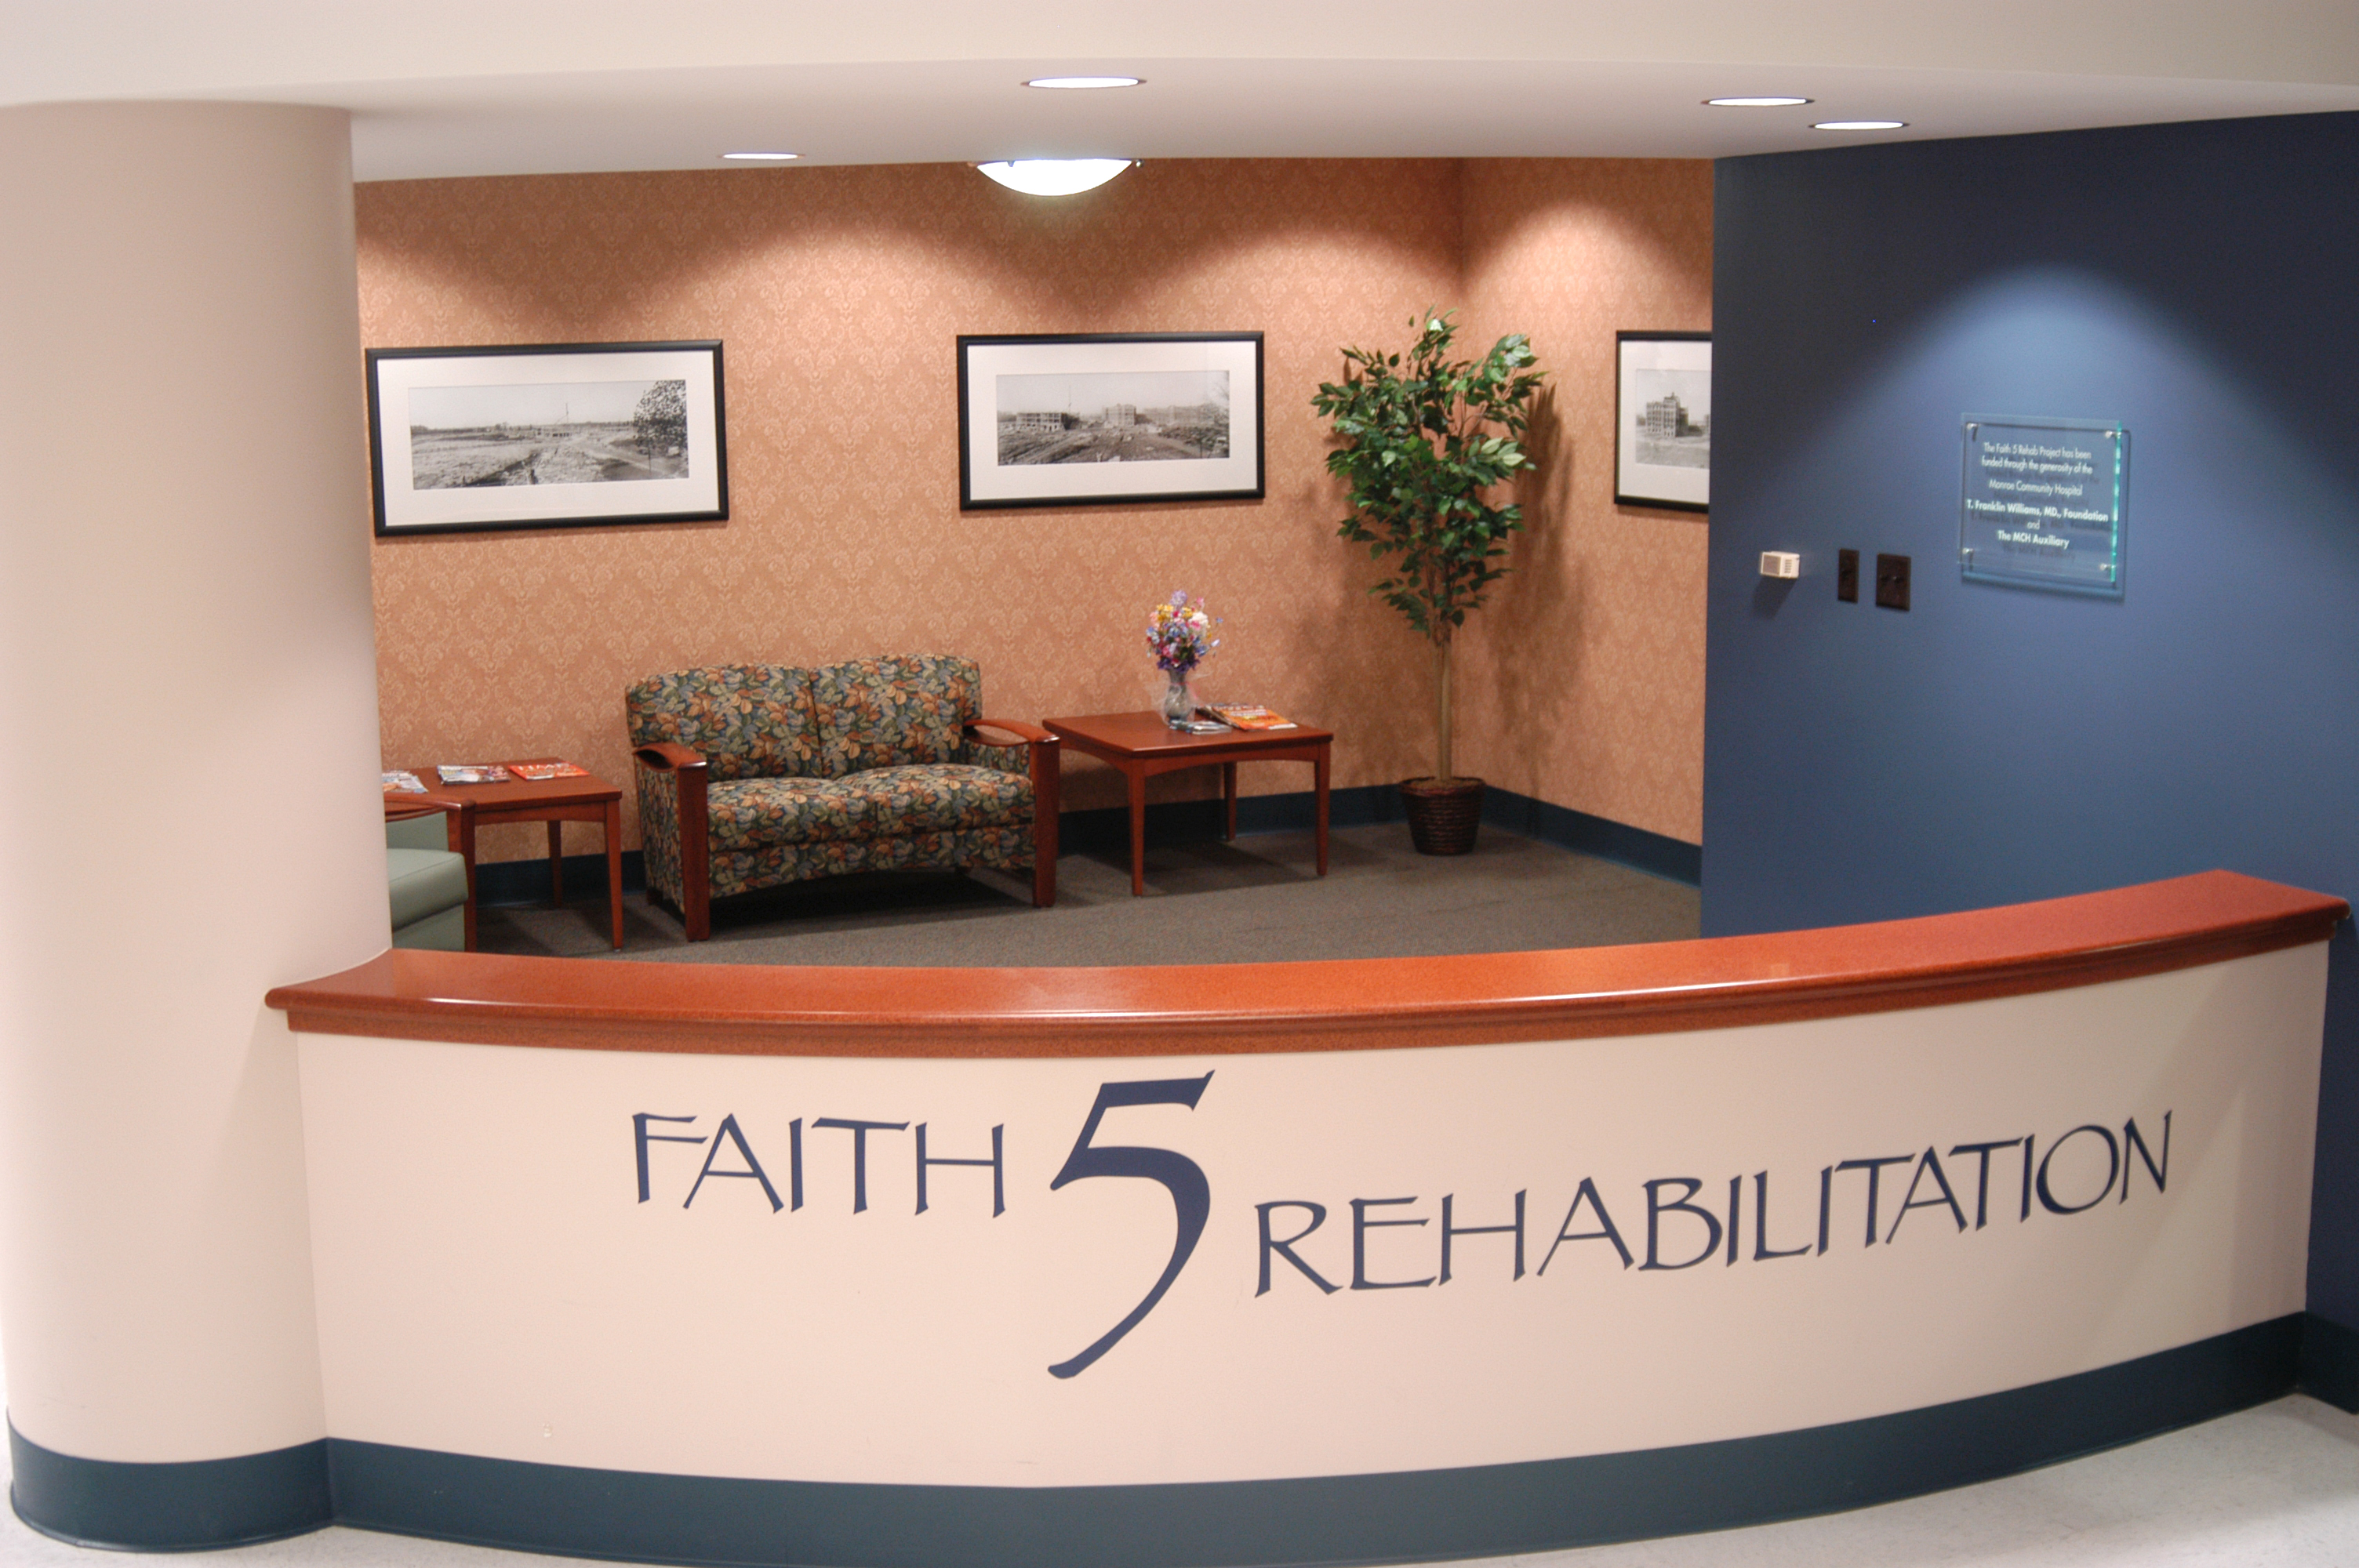 Faith 5 Rehab Lounge